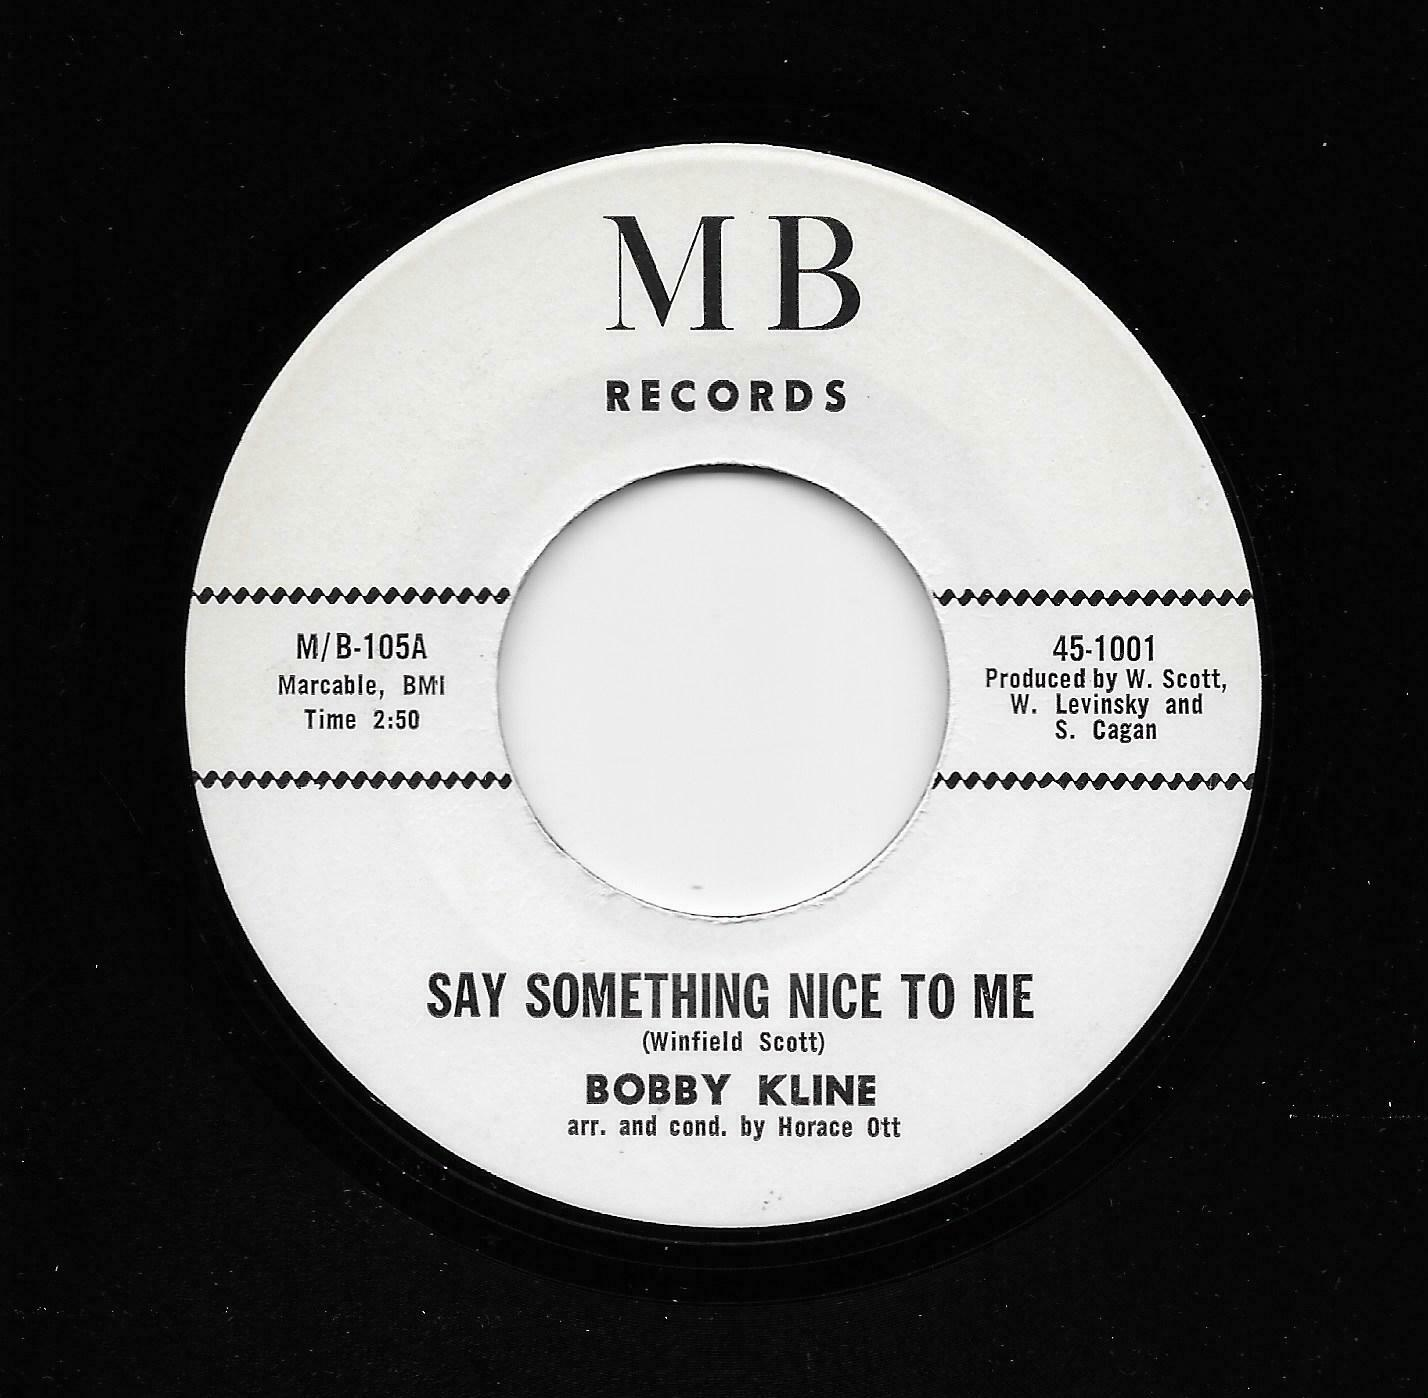 Bobby Kline - Say Something Nice To Me / Taking Care Of Business, Orig (45) 1001